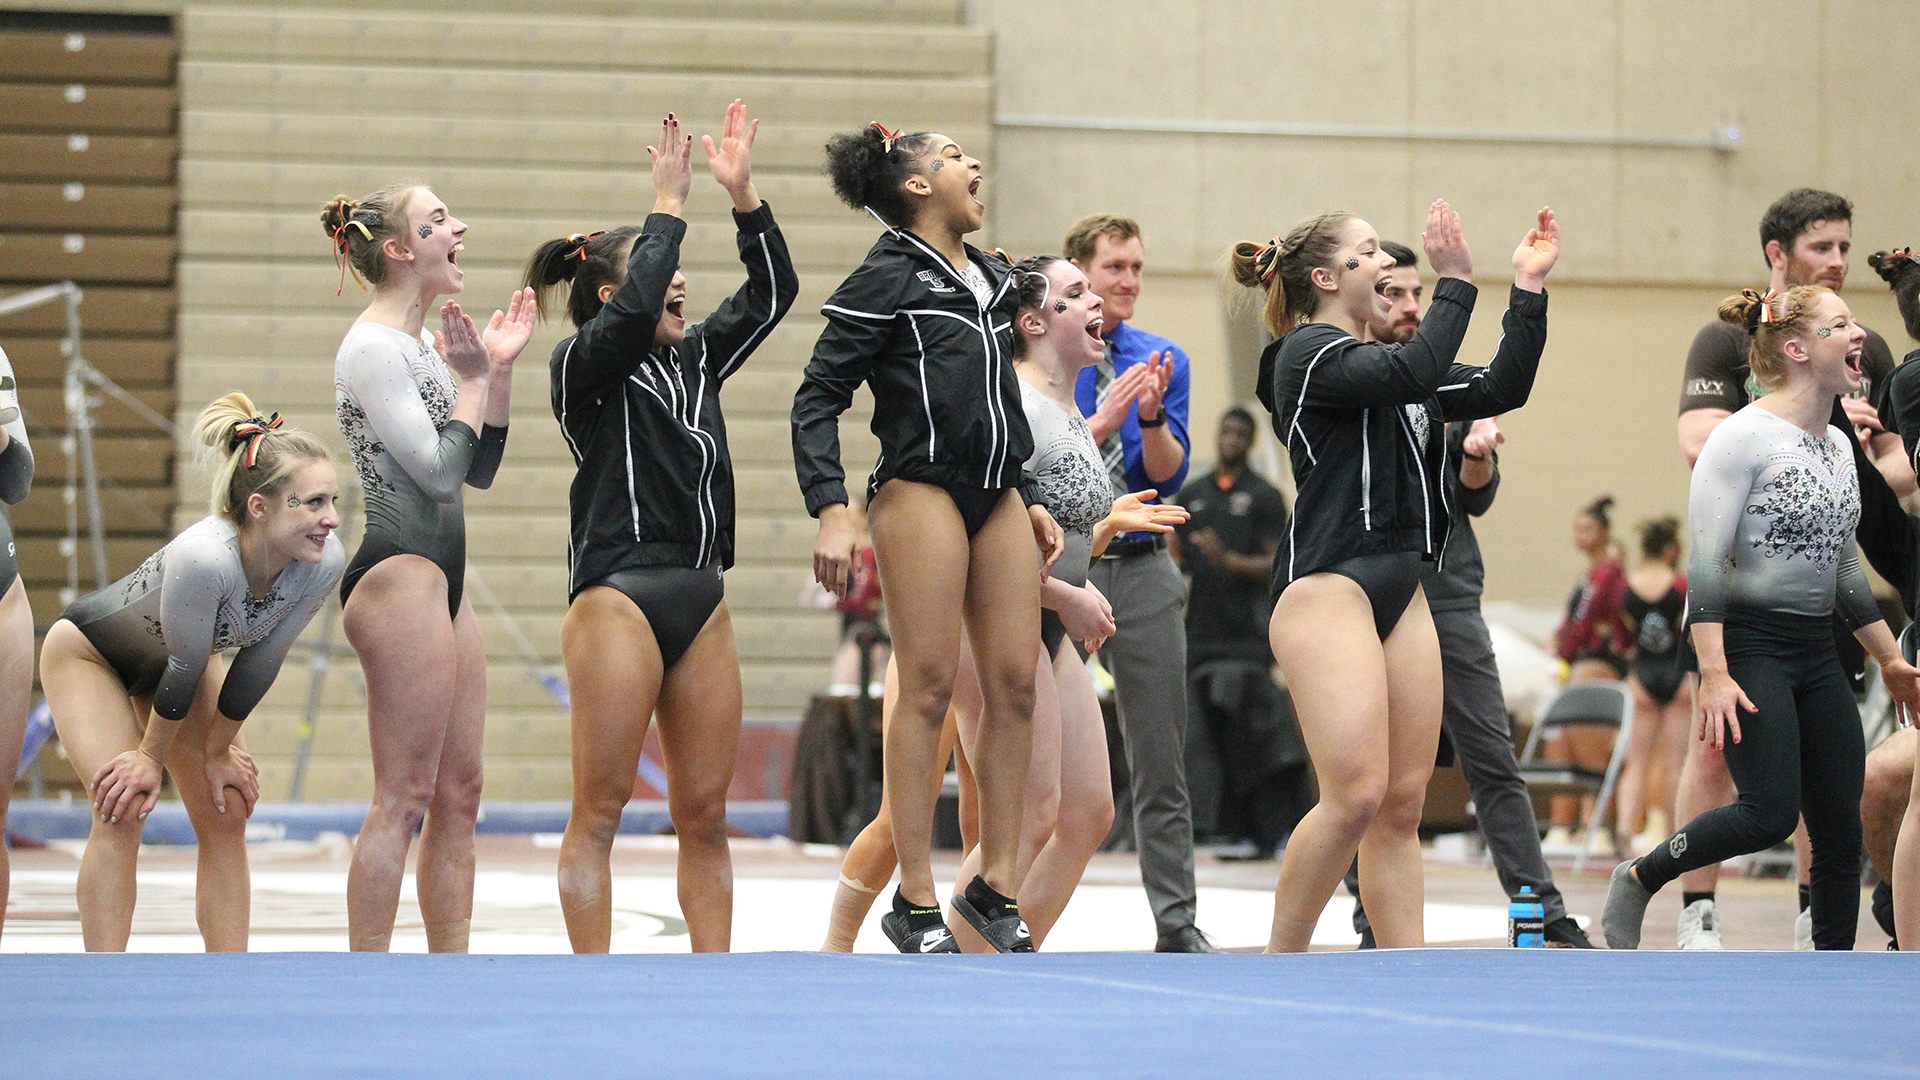 Gymnastics Welcomes Six-Member Class of 2023 - Brown